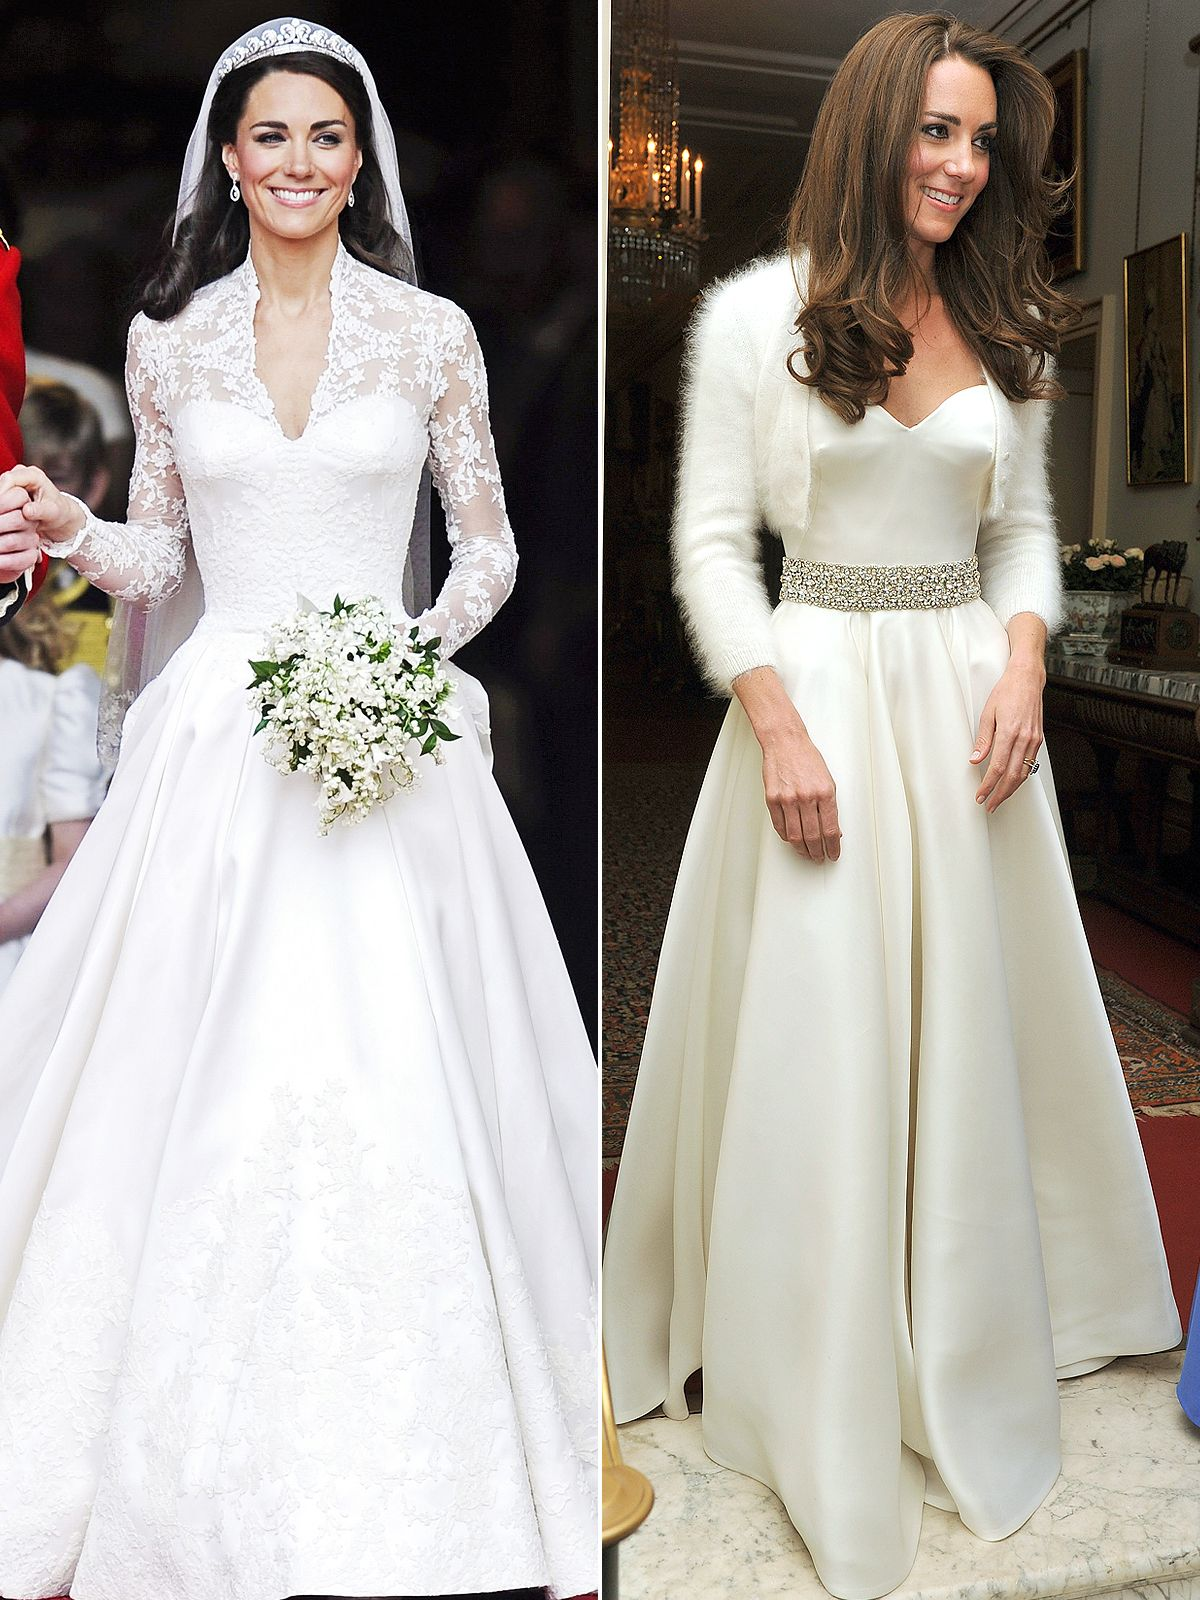 Will Pippa Middleton Wear Two Wedding Dresses Like Princess Kate ...